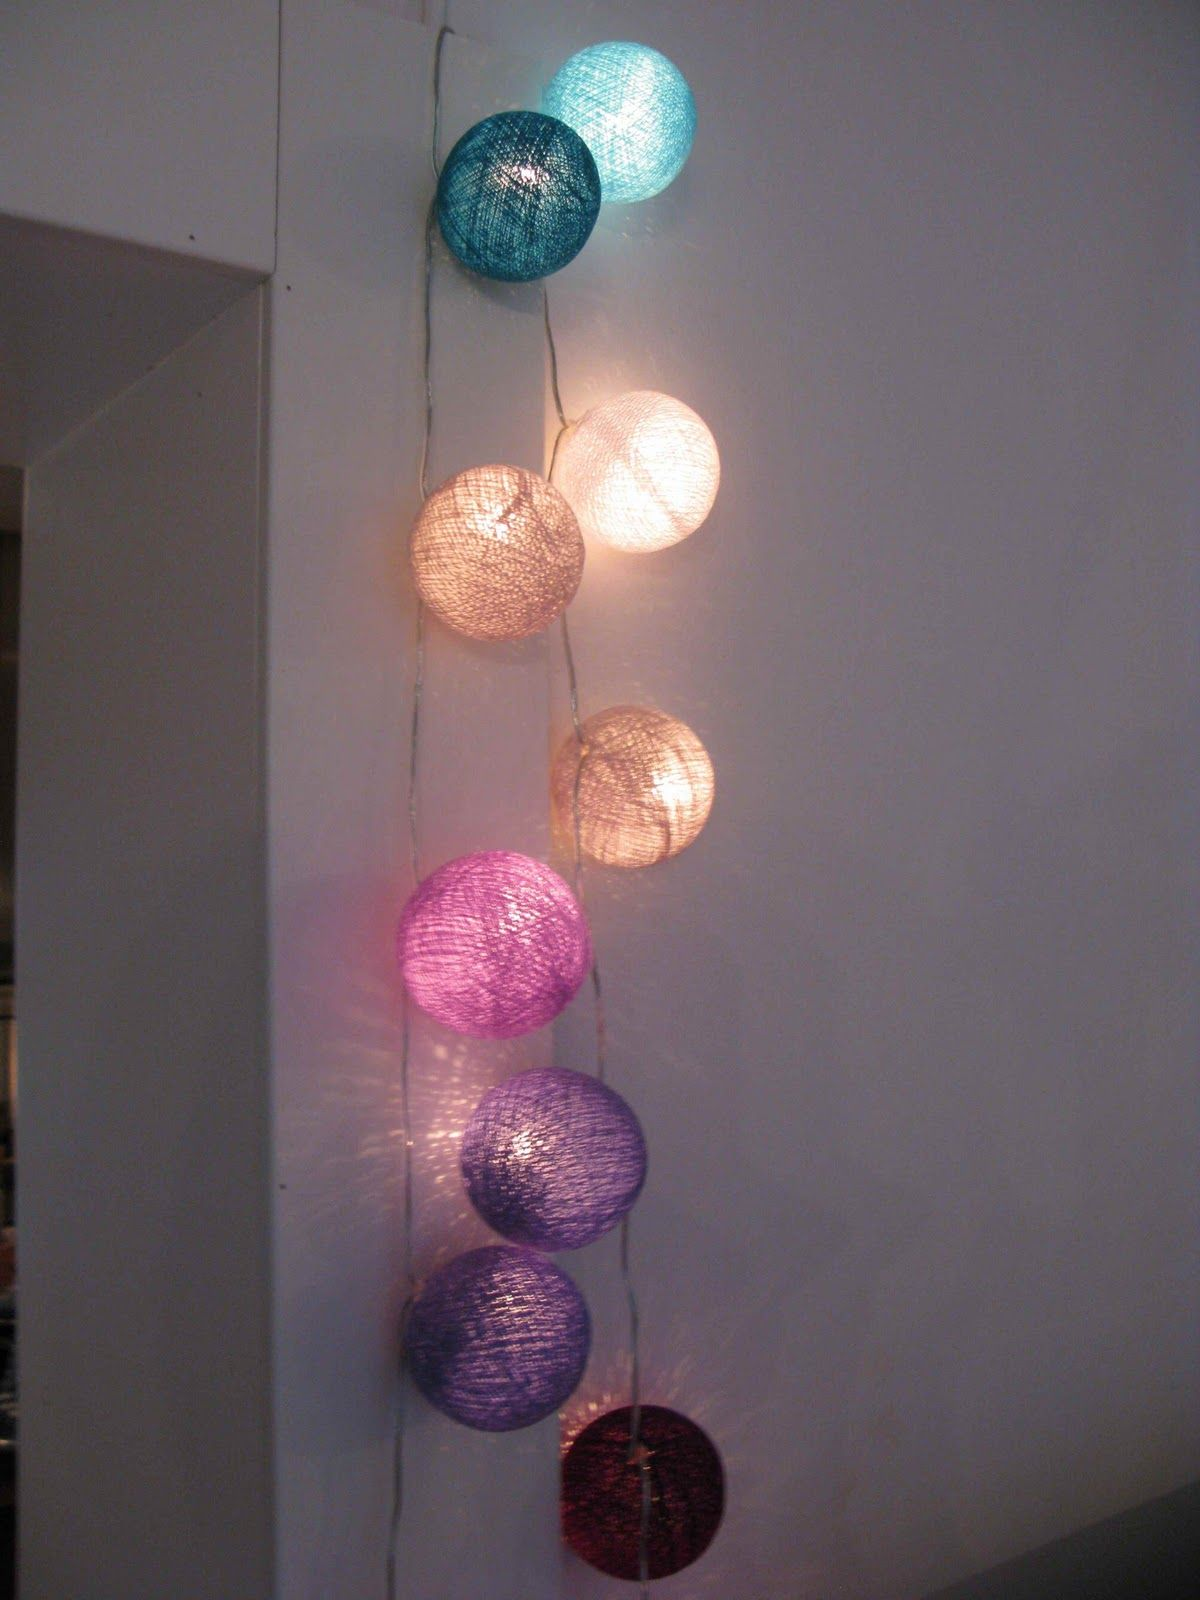 la case de cousin paul things ball lights fairy. Black Bedroom Furniture Sets. Home Design Ideas